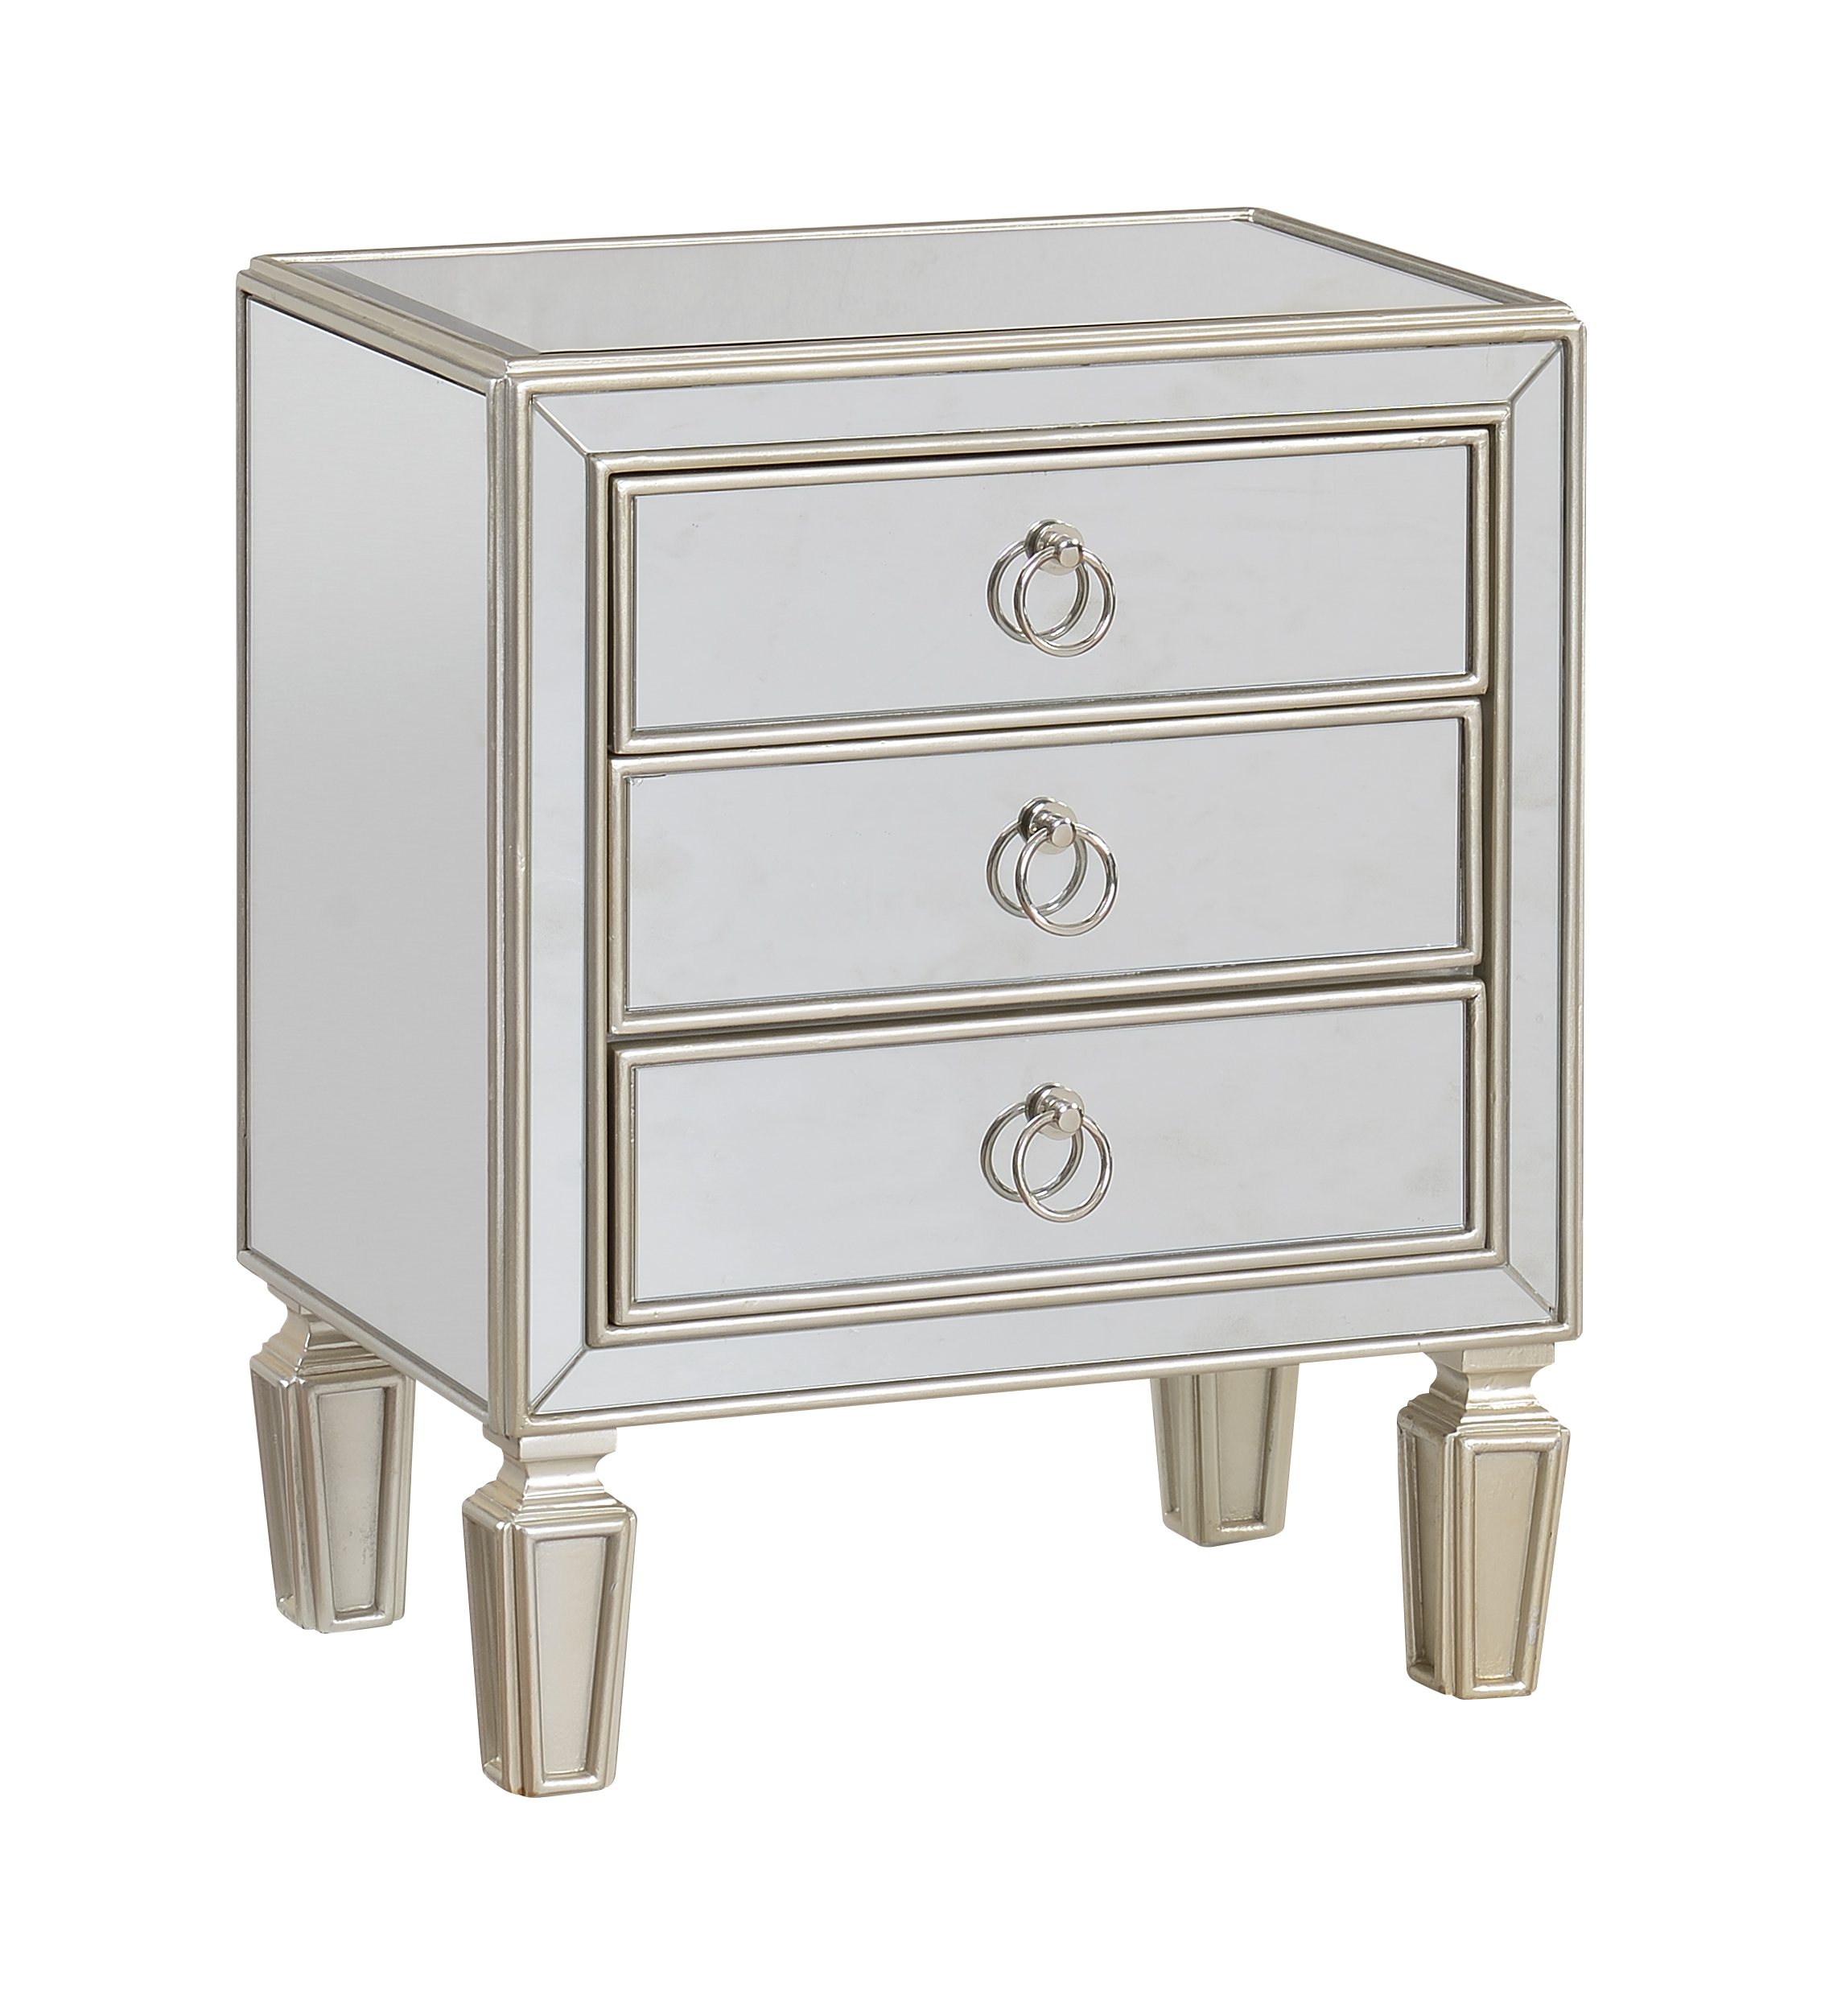 Coast to Coast Imports Coast to Coast Accents Three Drawer Chest - Item Number: 78717